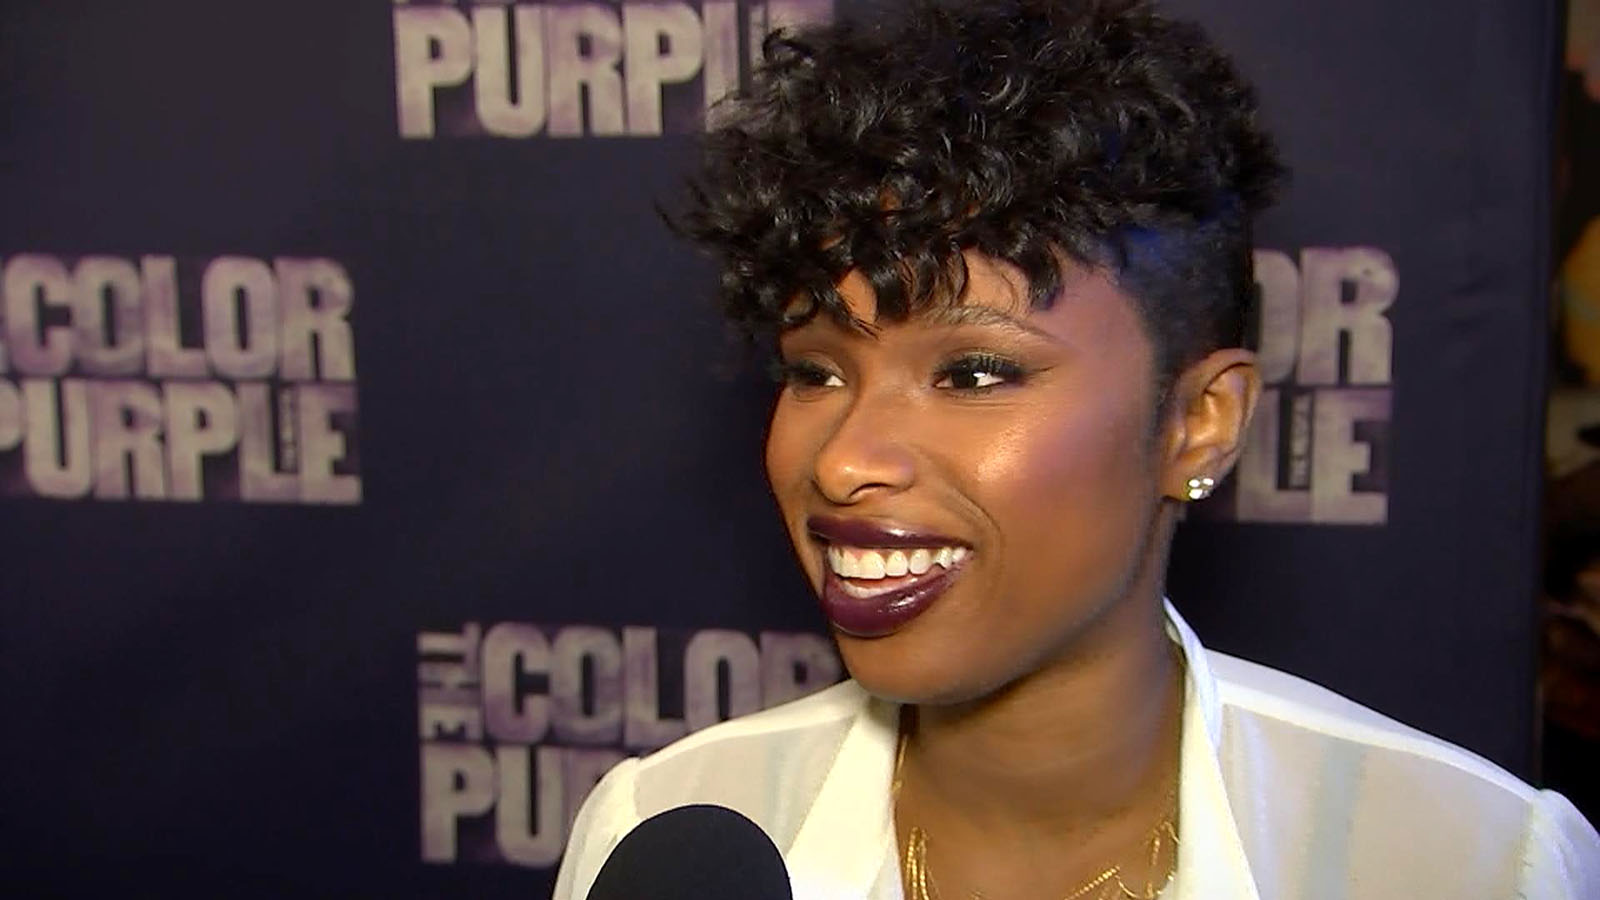 Jennifer Hudson On Making Her Broadway Debut In 'The Color Purple'